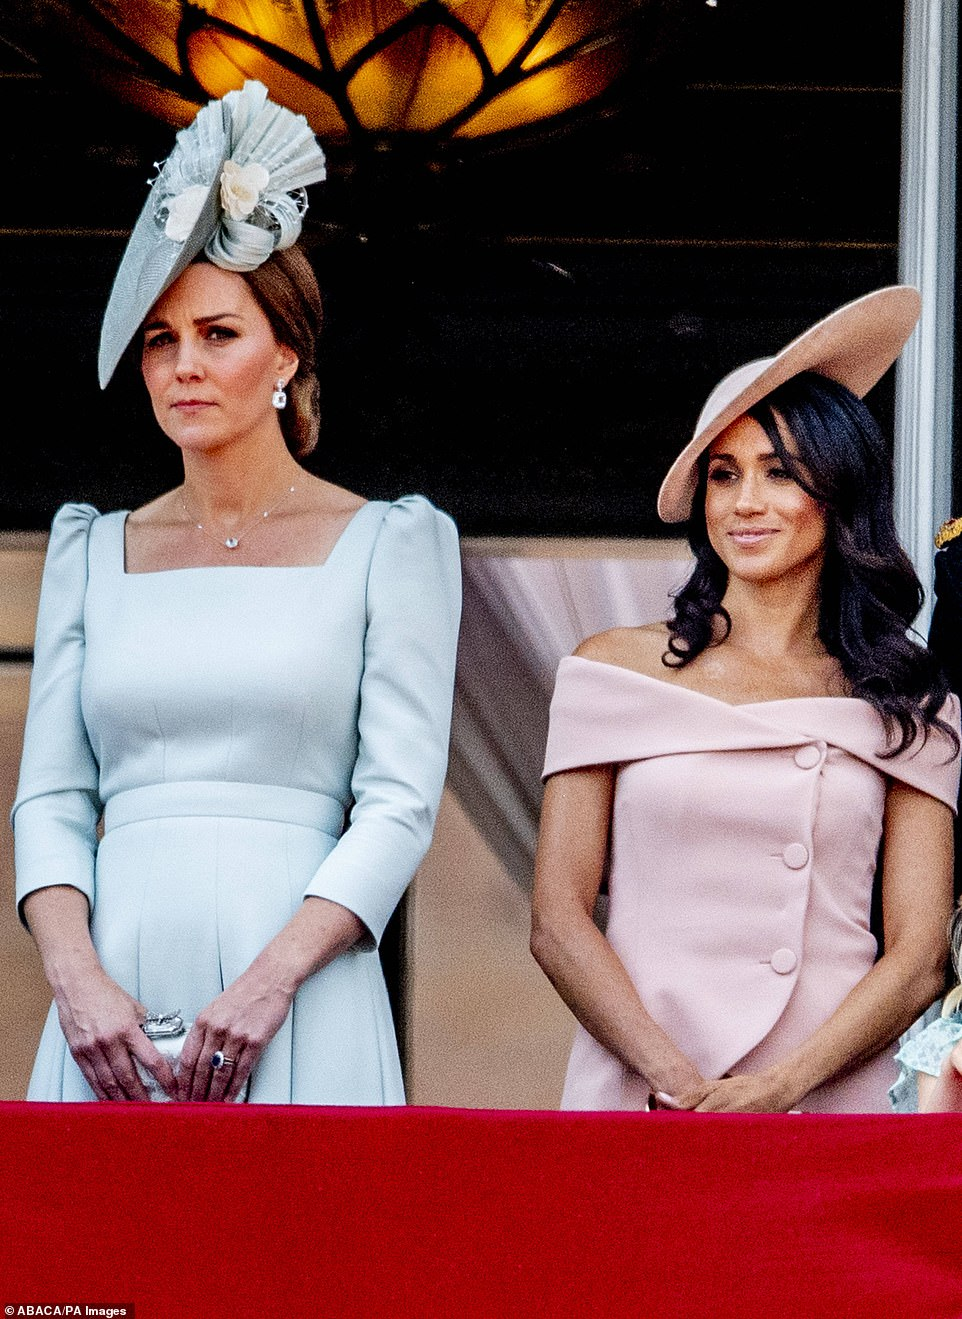 The Timesrevealed in March how Jason Knauf, communications secretary to the Cambridges and Sussexes, claimed in October 2018 that Meghan had been bullying members of staff. Lawyers for the Sussexes have denied the allegations